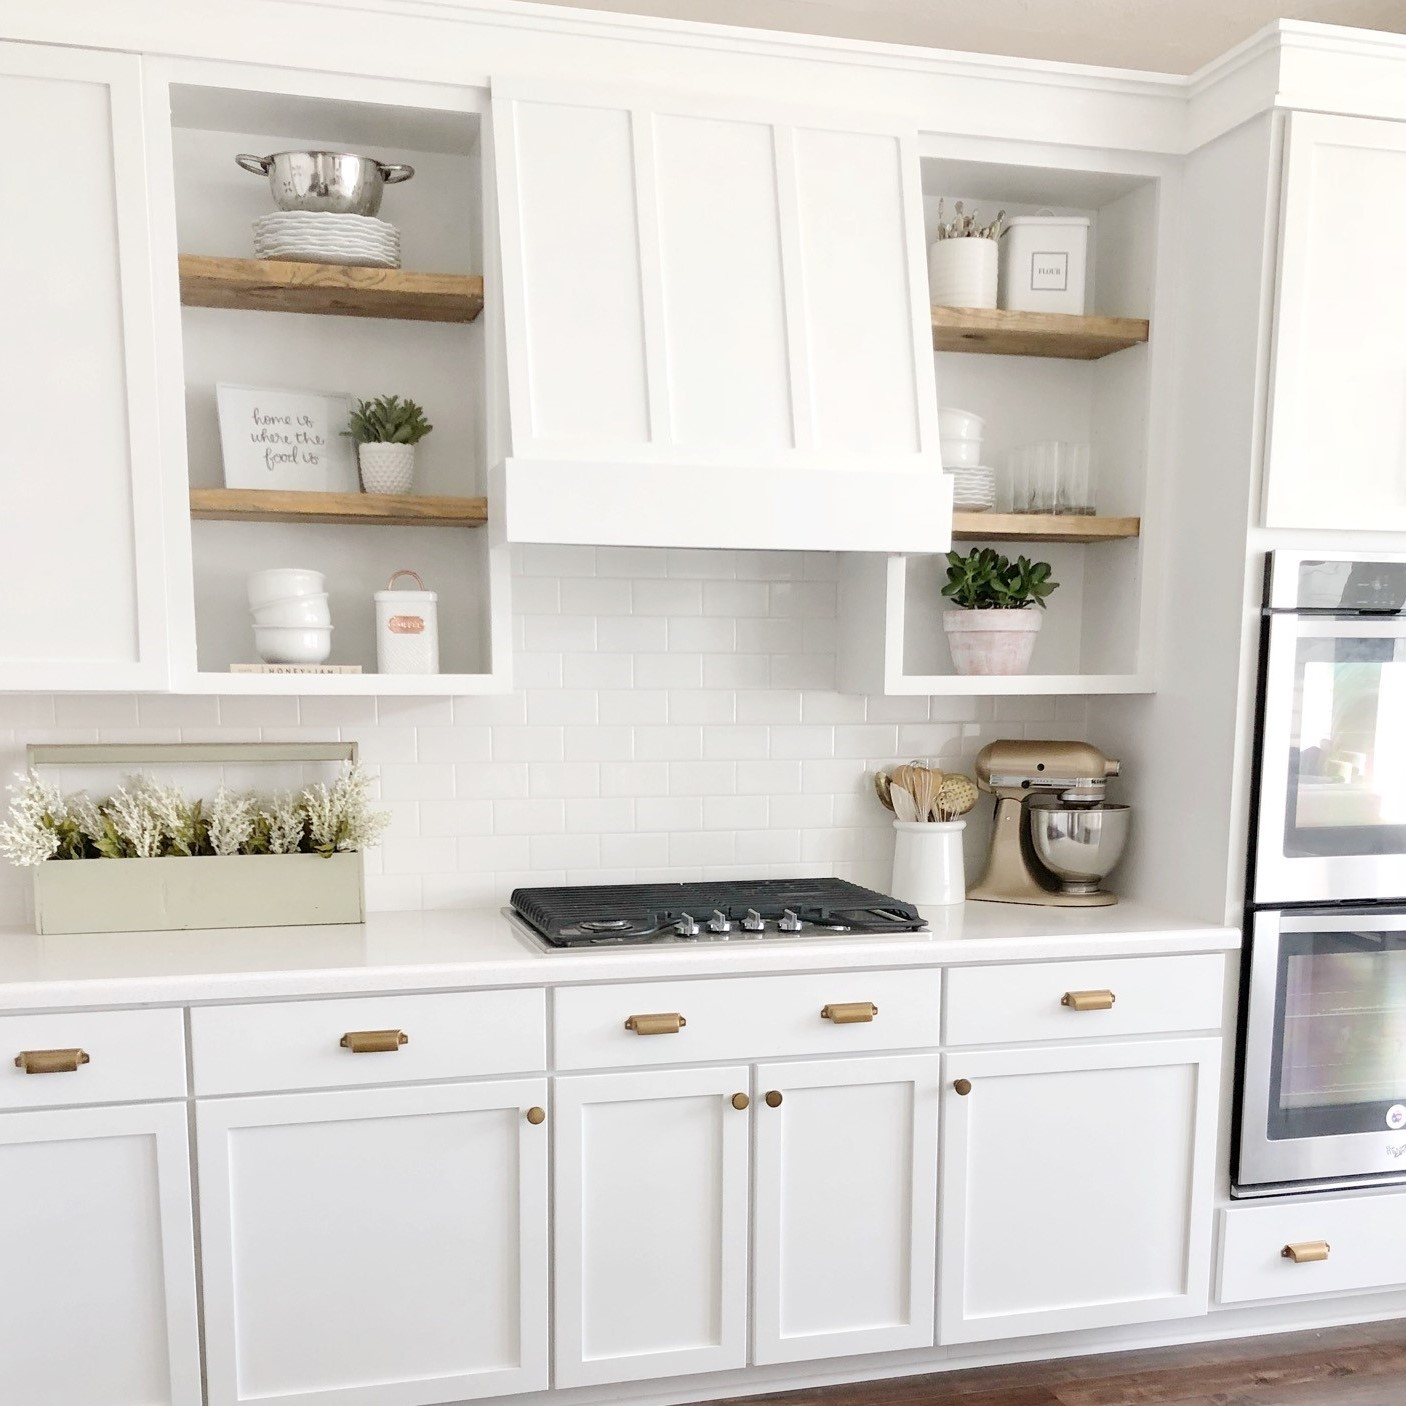 diy kitchen vent hood and cabinet